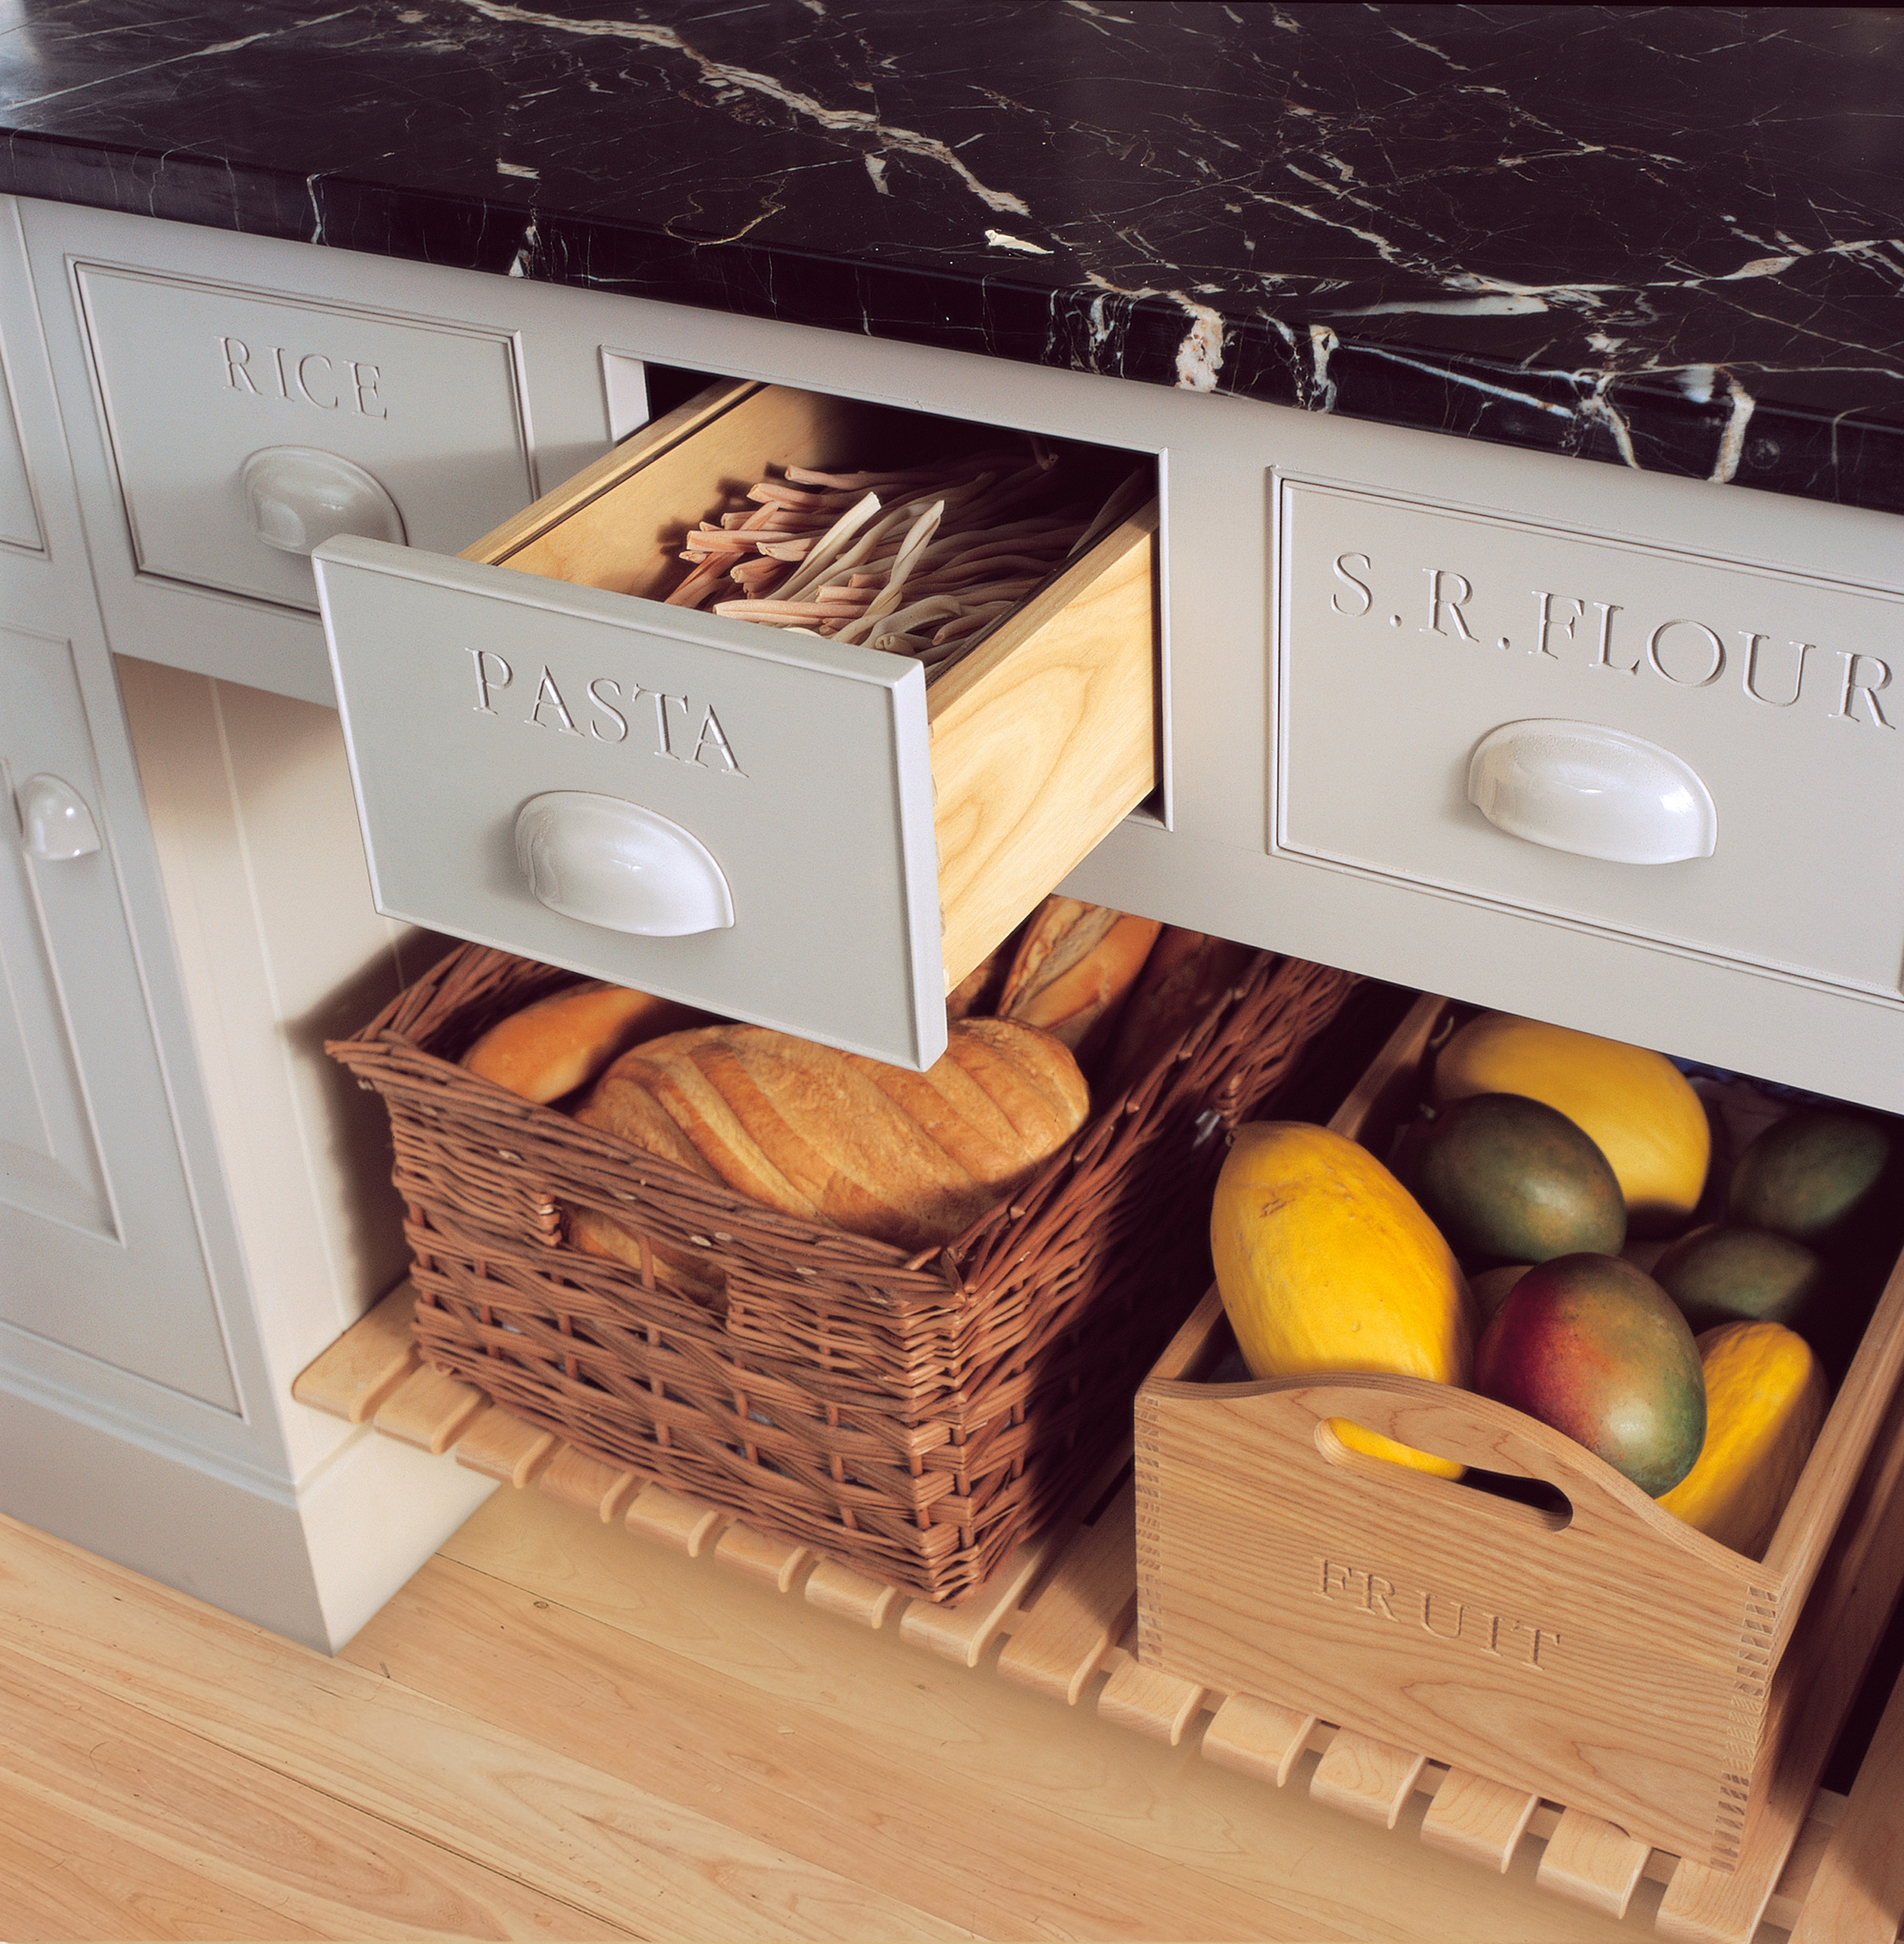 Mark wilkinson furniture collection english classic kitchen 18